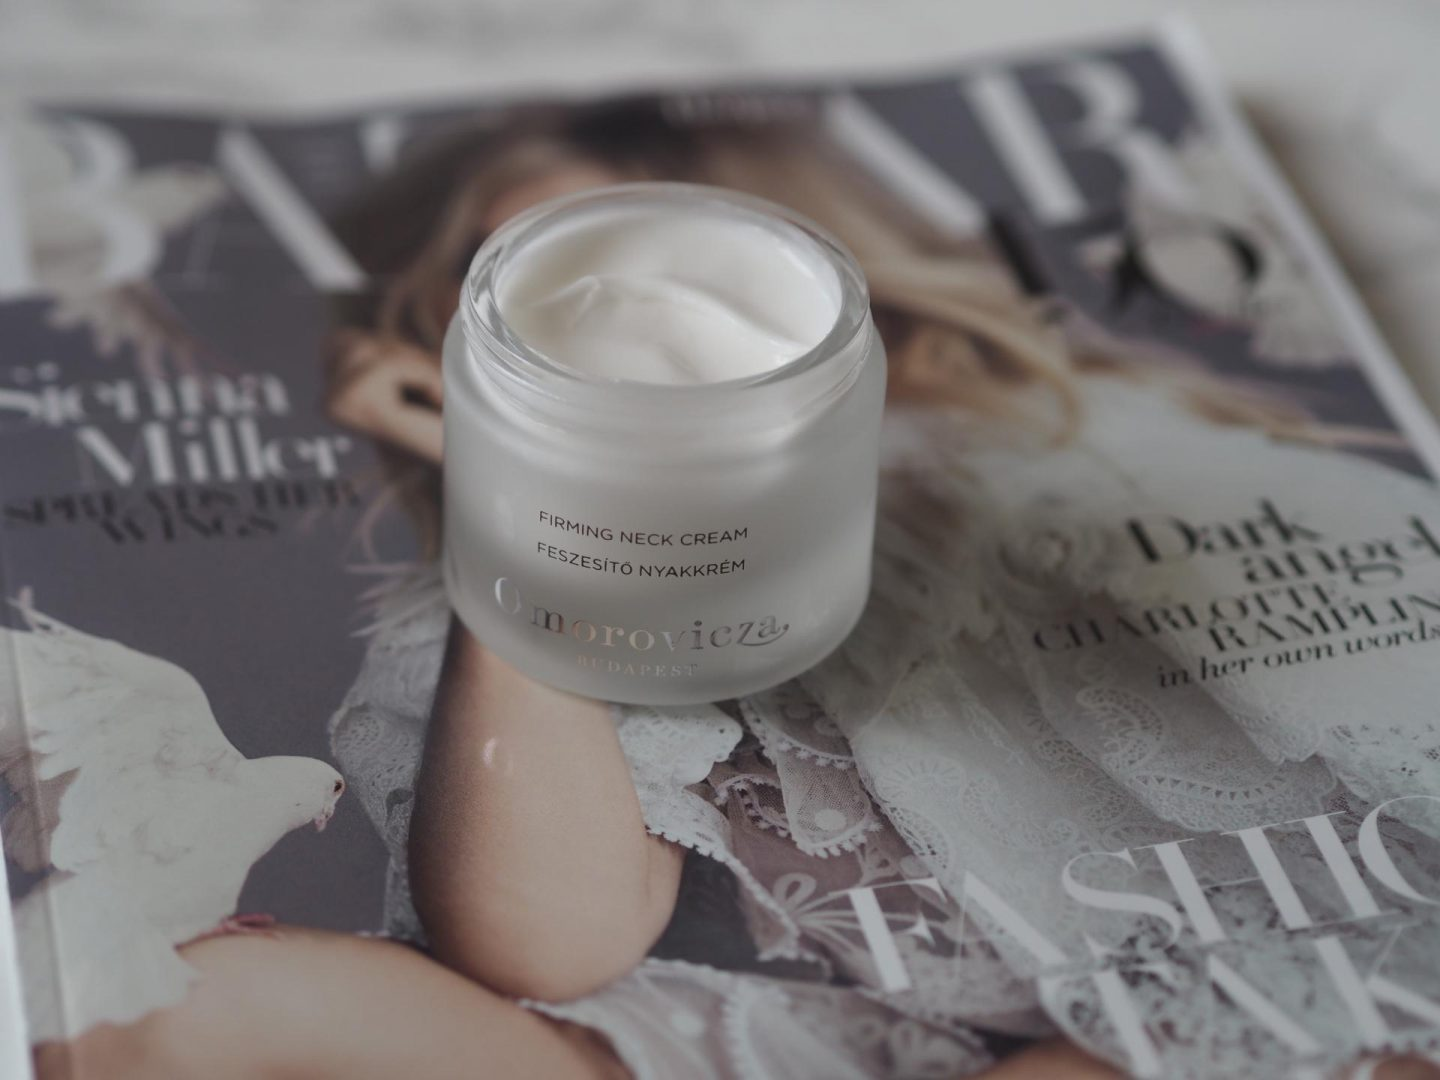 Omorovicza has just launched a Firming Neck Cream